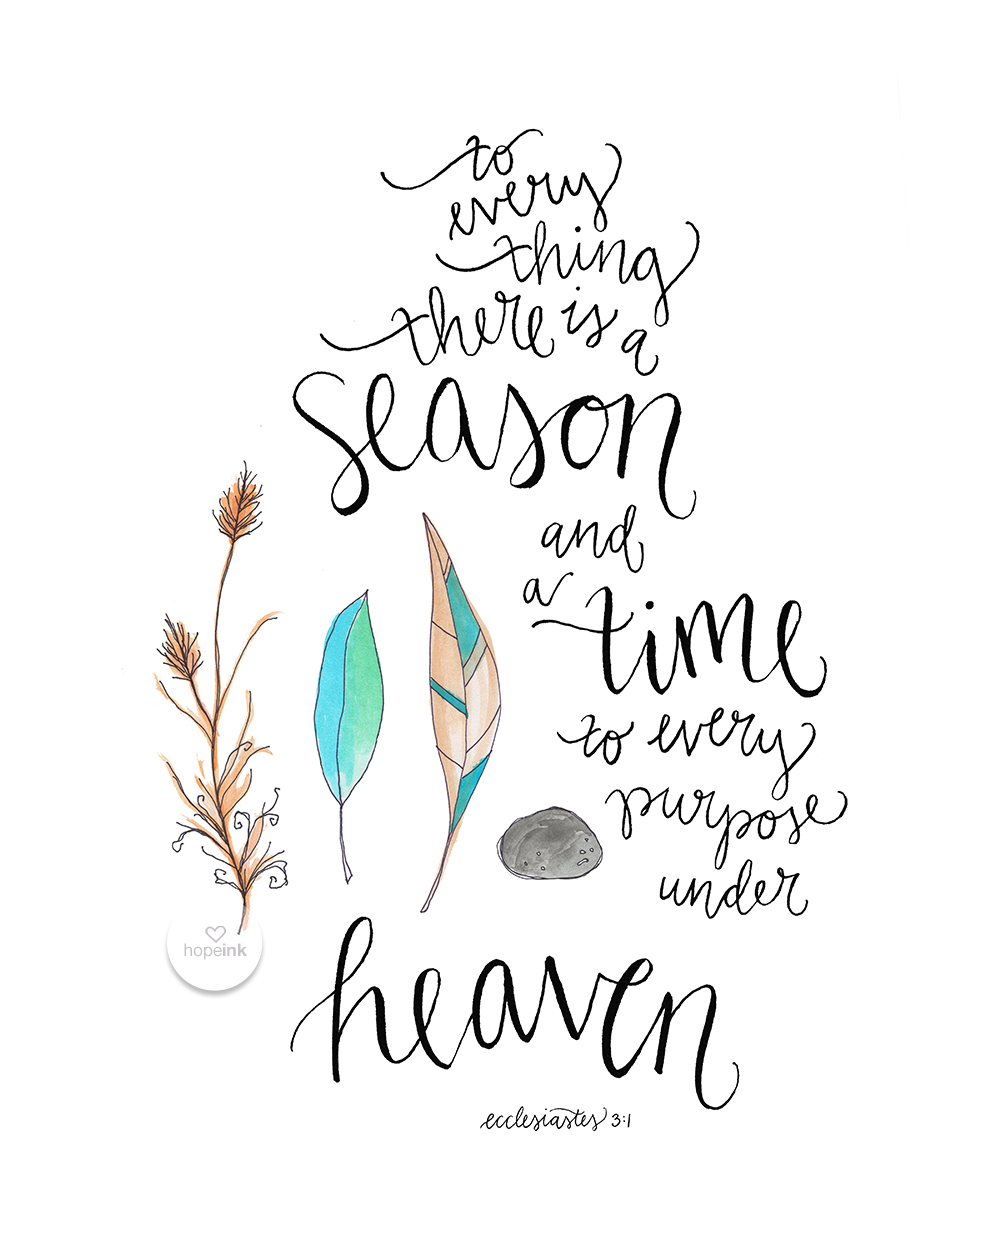 To every thing there is a season and a time to every purpose under heaven II hand lettered scripture art II hope ink.jpg